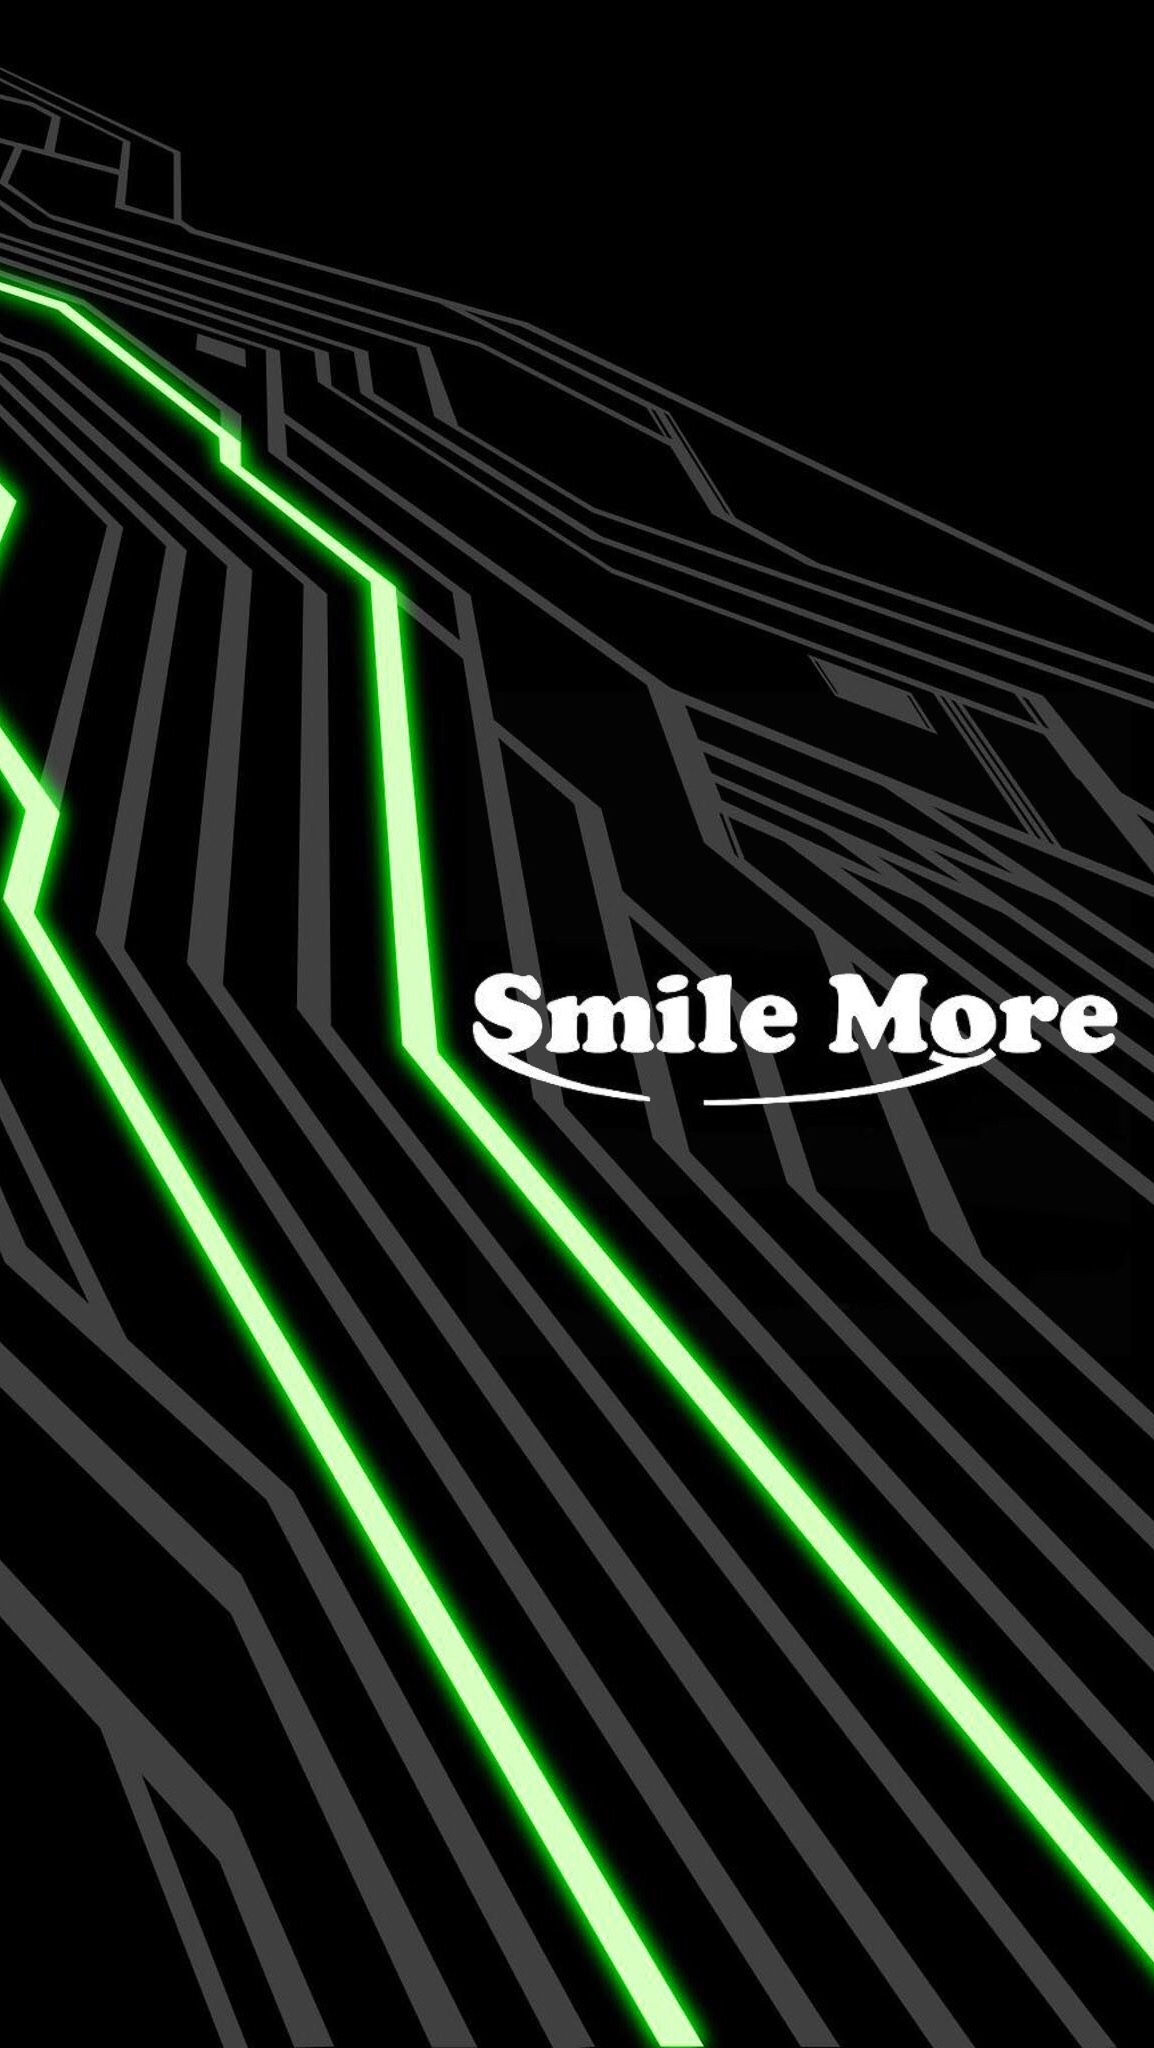 What Is The Best Wallpaper App For Iphone X Smile More Romanatwood Smilemore Iphone Wallpapers